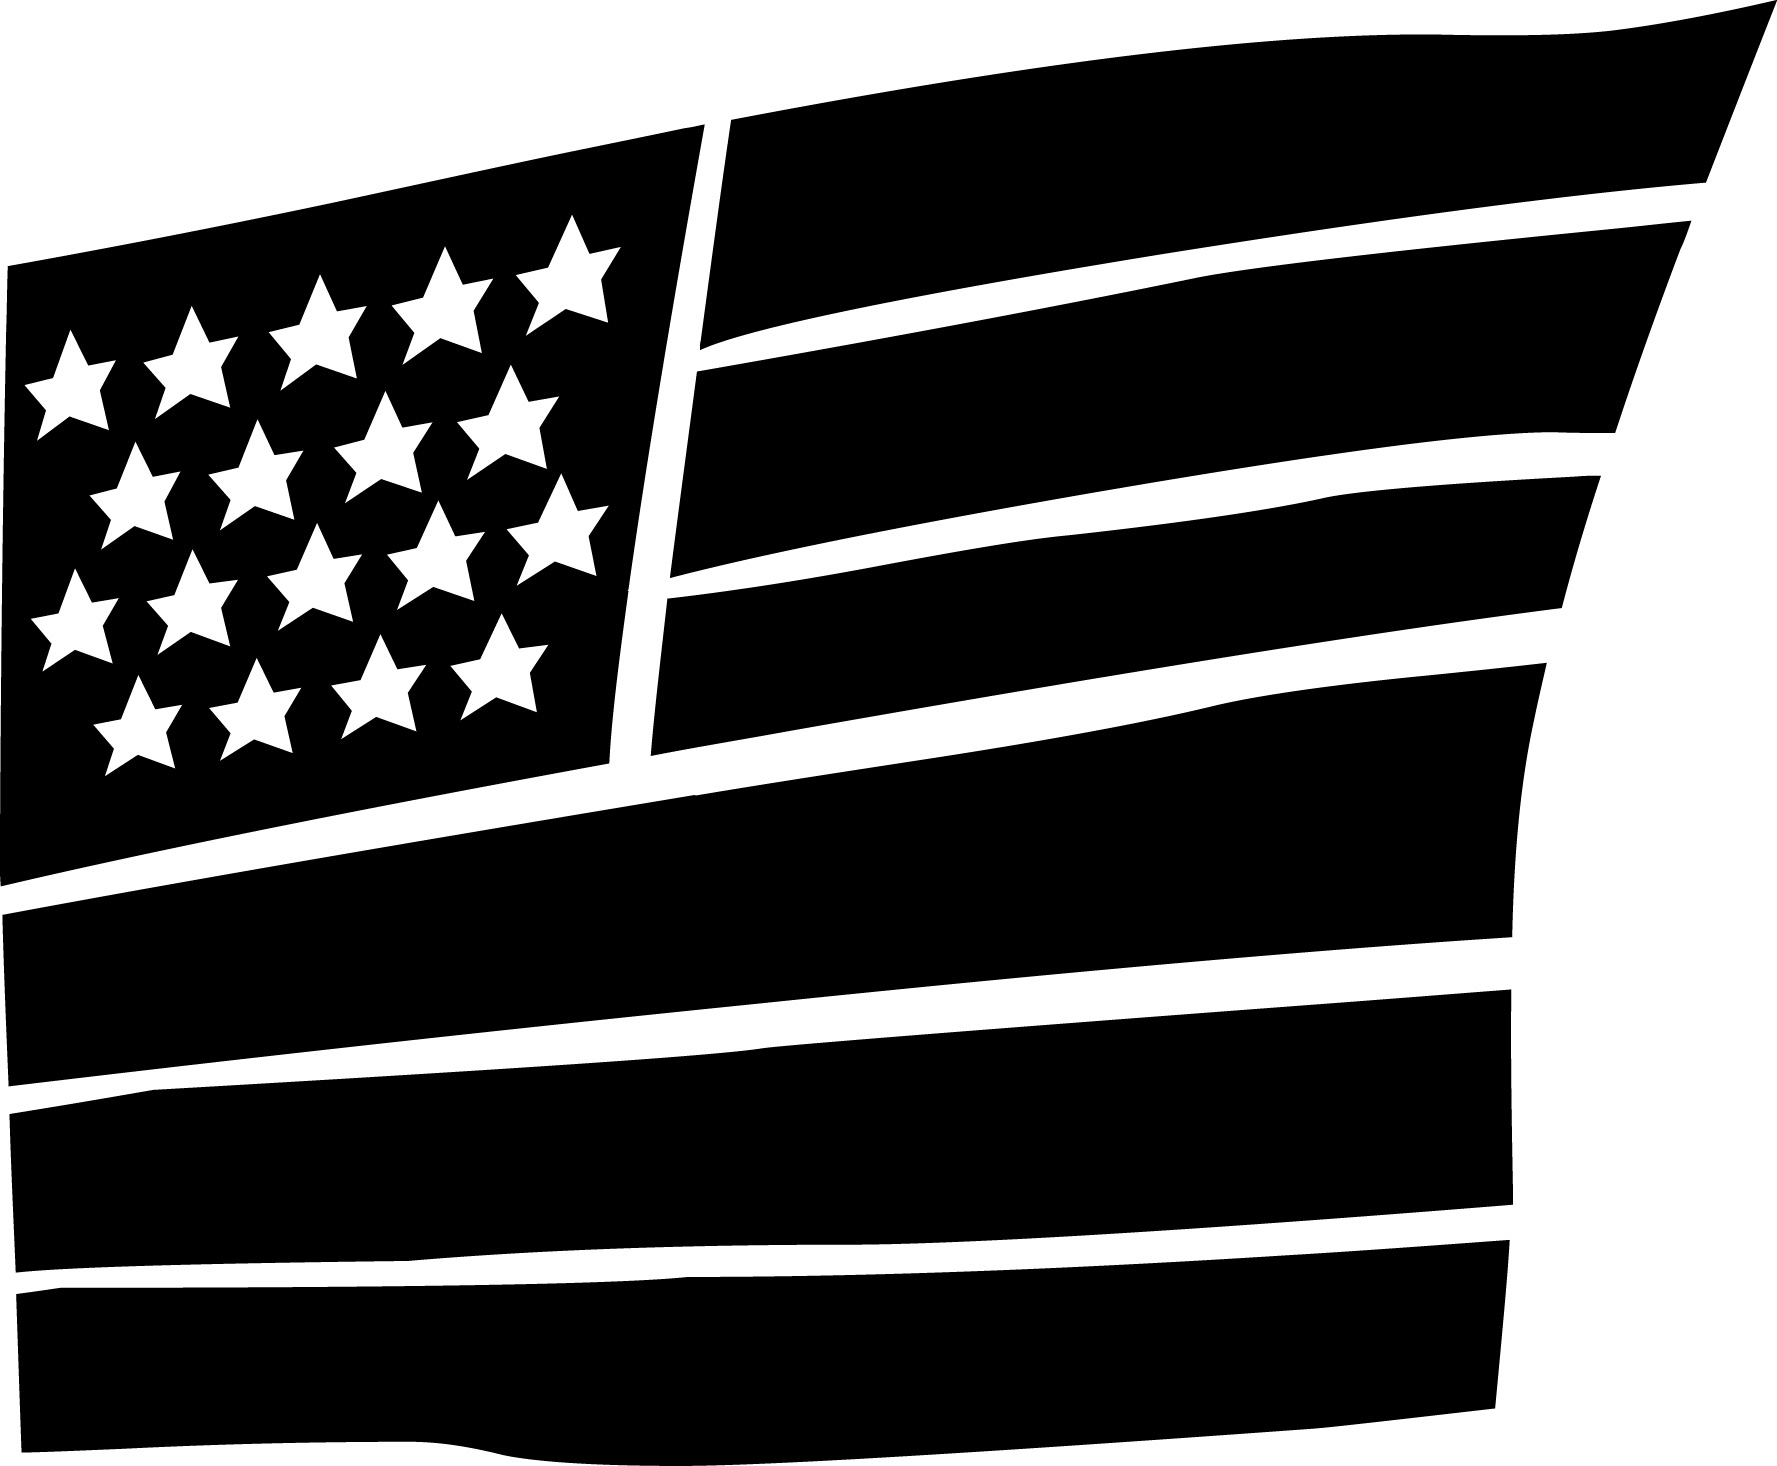 Alabama waving flag clip art american flag pictures flag.